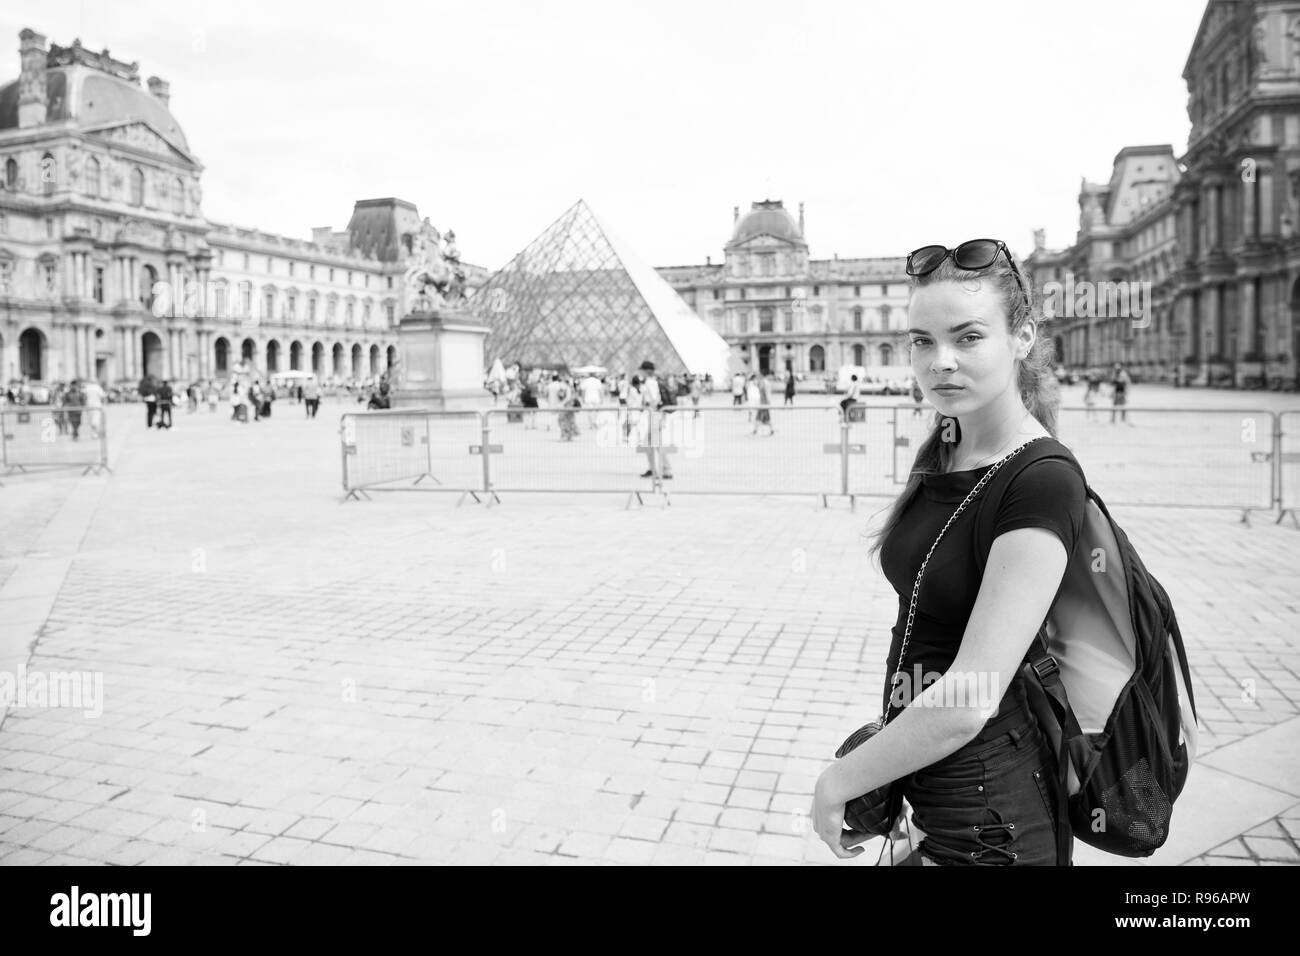 Girl tourist sightseeing walk Paris square city center. Backpacker exploring city. Woman stand in front of urban architecture copy space. Must visit place. Guide for tourists to explore paris. - Stock Image